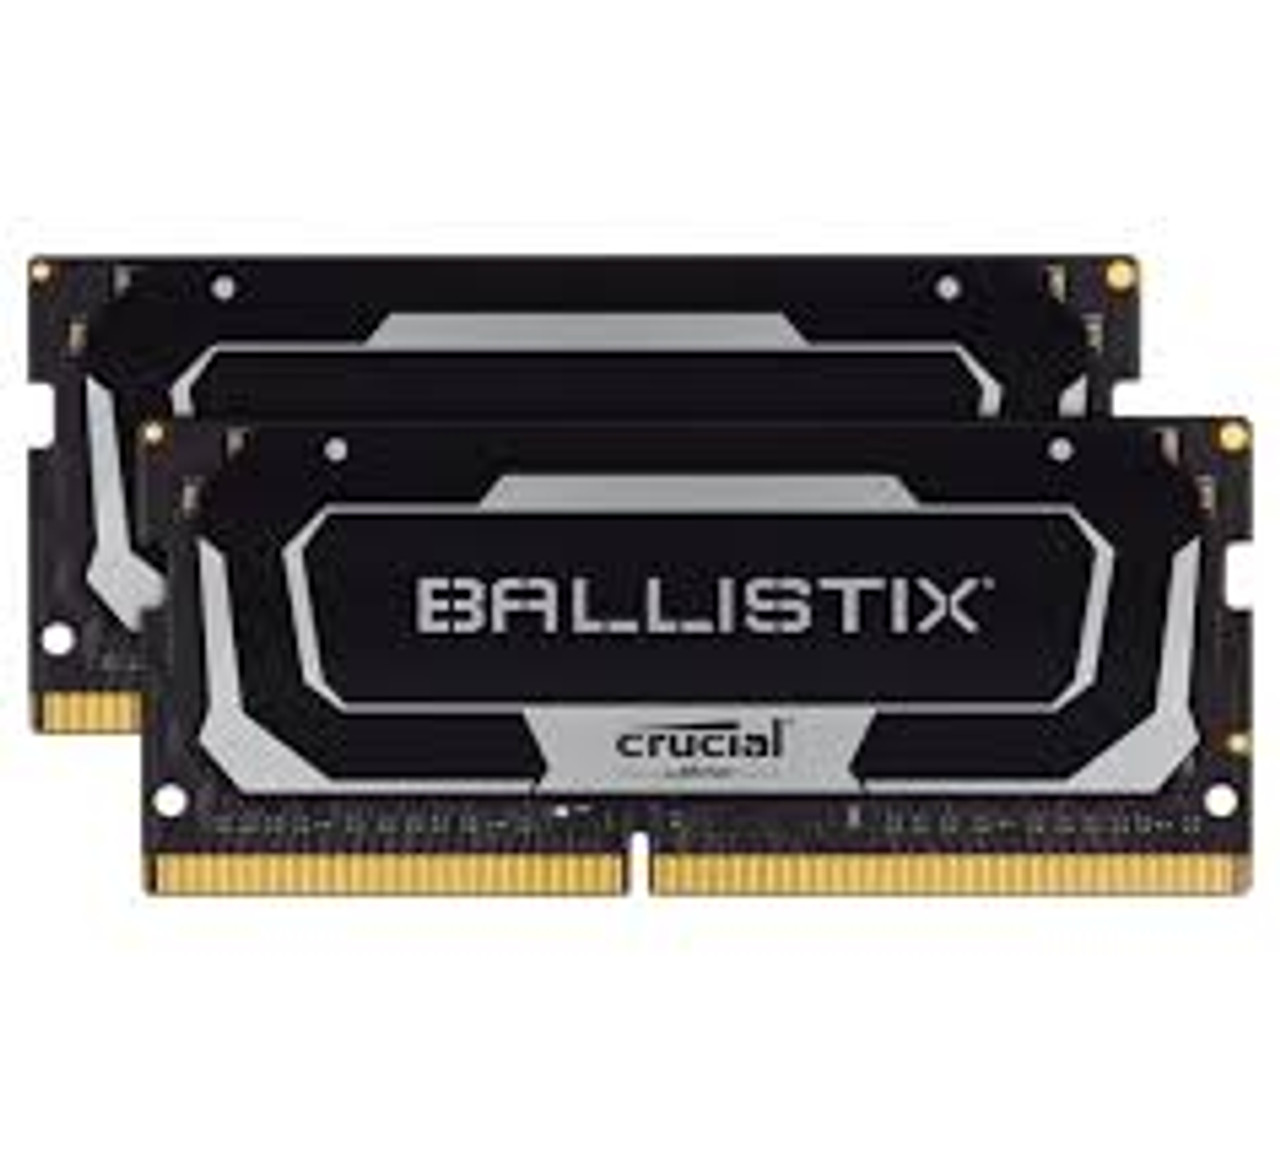 Crucial Ballistix 64GB (2x32GB) DDR4 SODIMM 3200MHz CL16 Black Aluminum Heat Spreader Intel XMP2.0 AMD Ryzen Notebook Gaming Memory